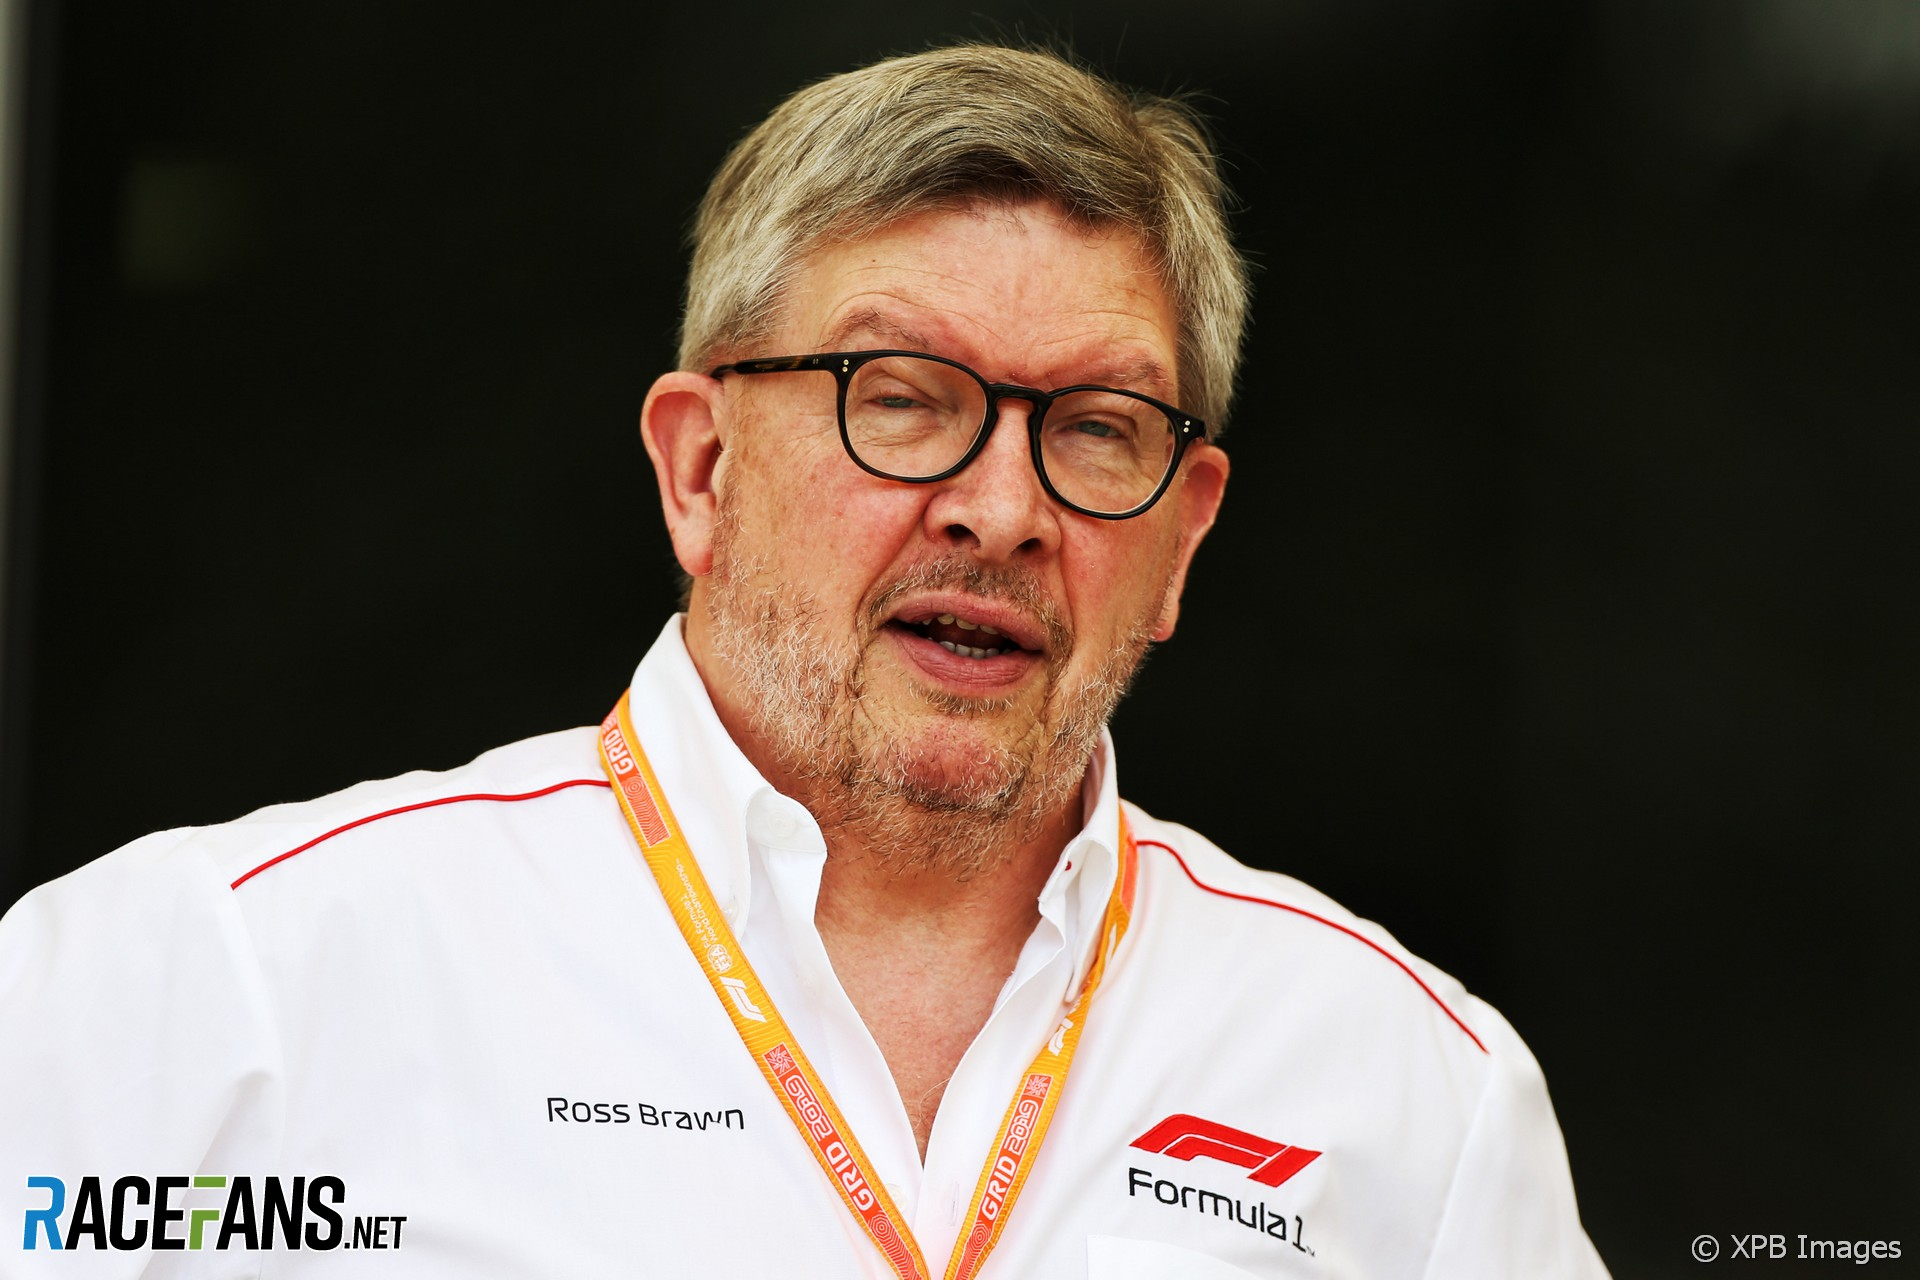 Ross Brawn, Bahrain International Circuit, 2019